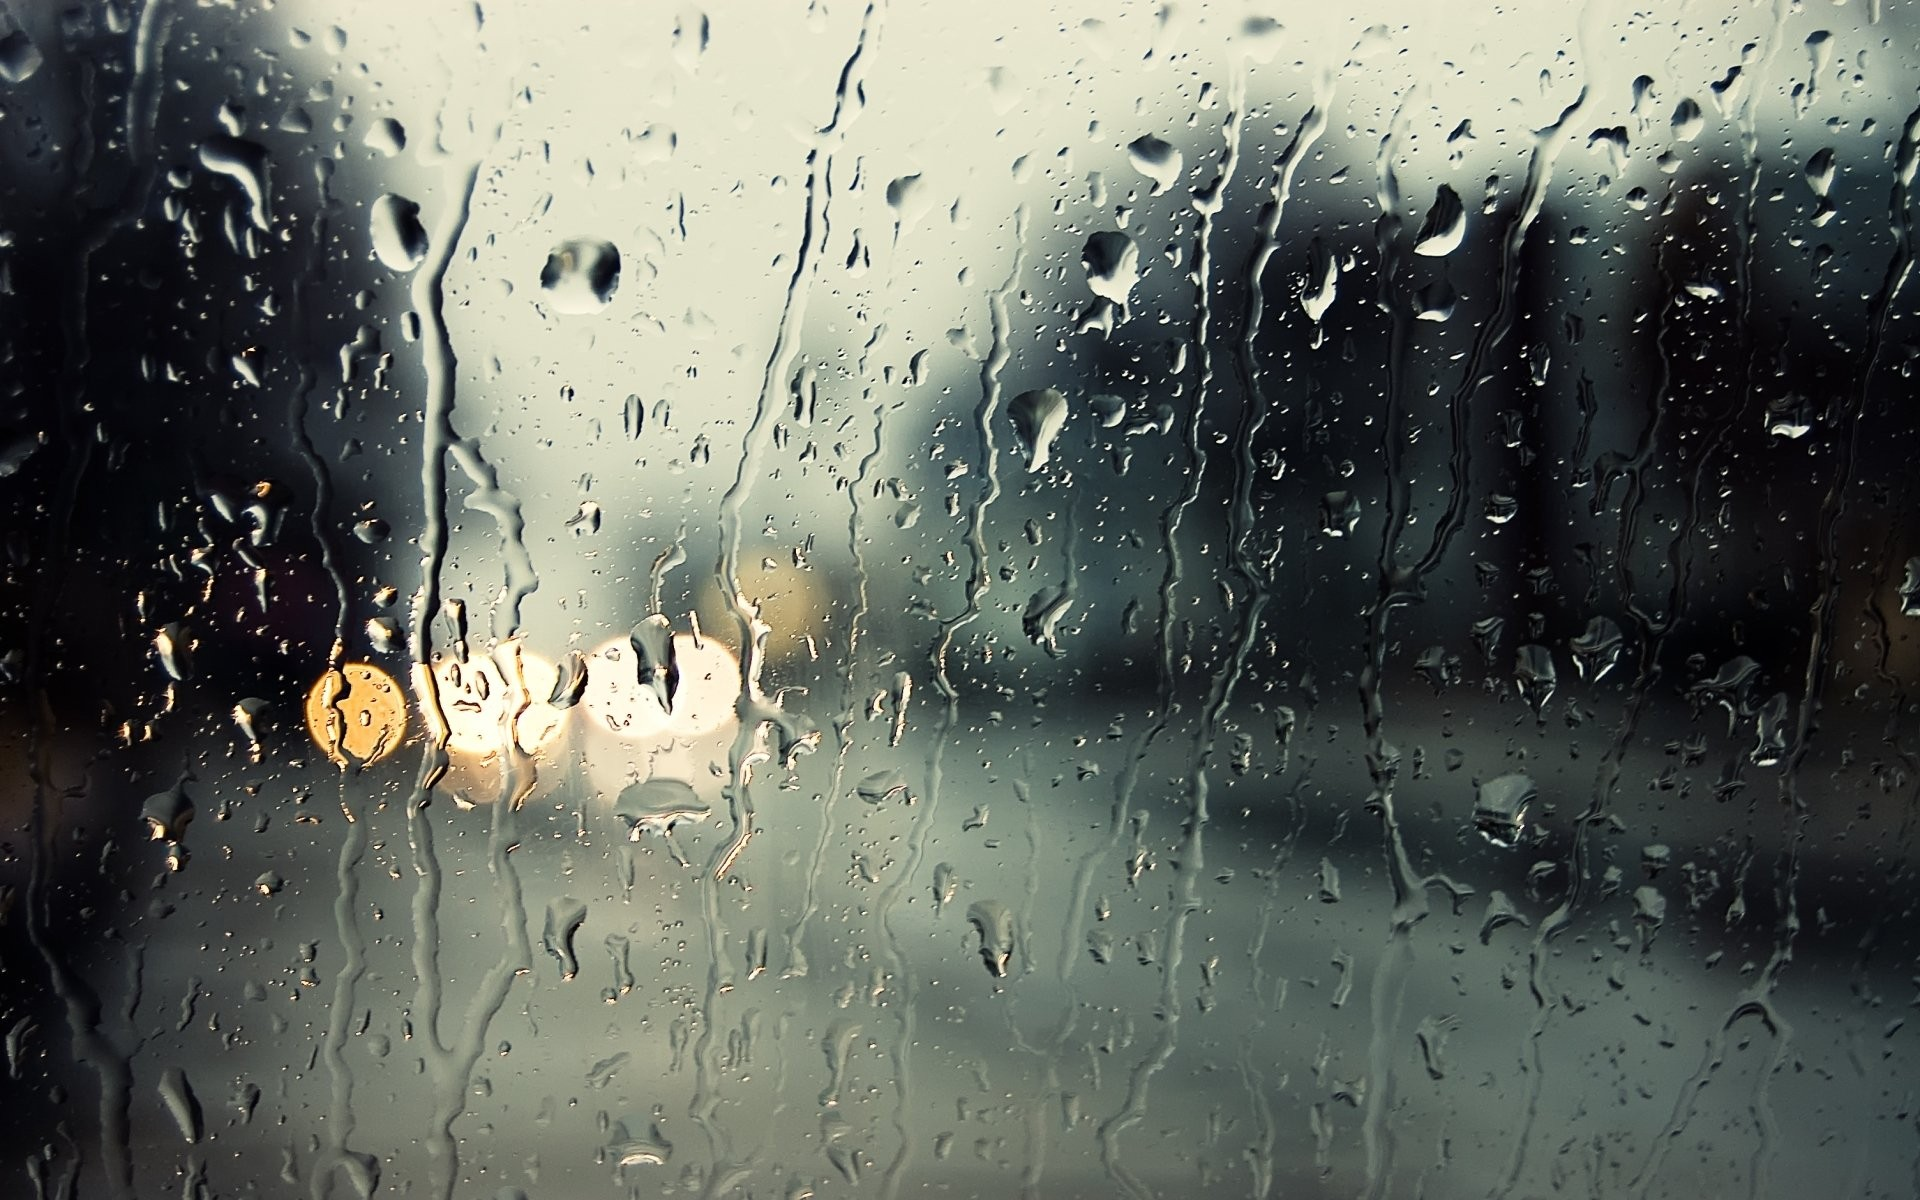 Rain Wallpaper ① Download Free Stunning Full Hd Wallpapers For